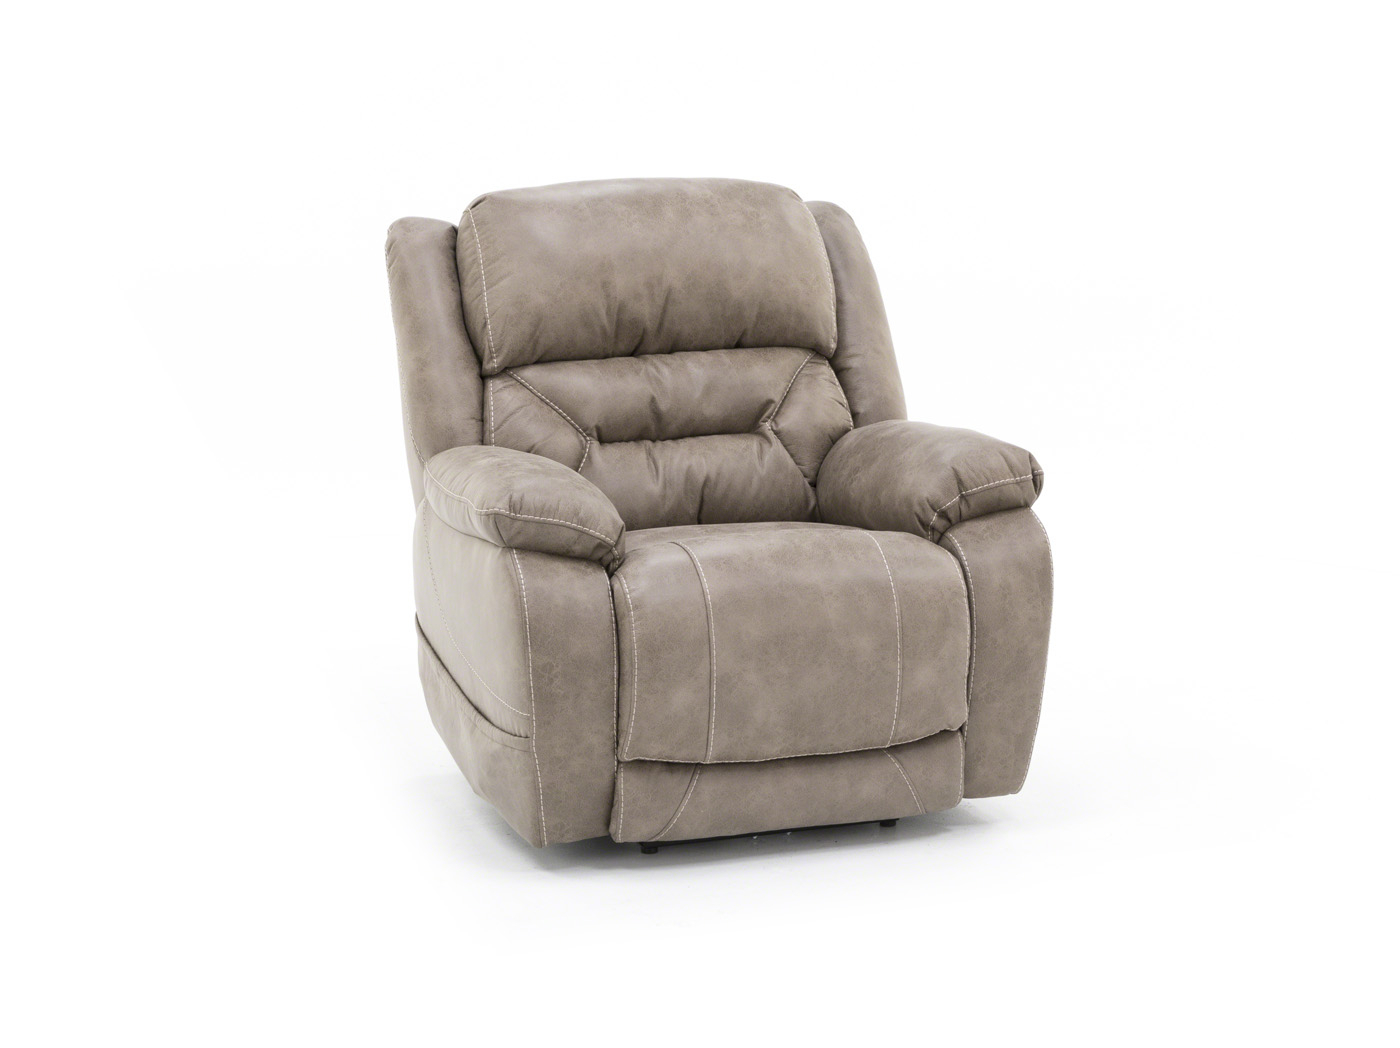 Living Room - Recliners | Steinhafels pertaining to Hercules Chocolate Swivel Glider Recliners